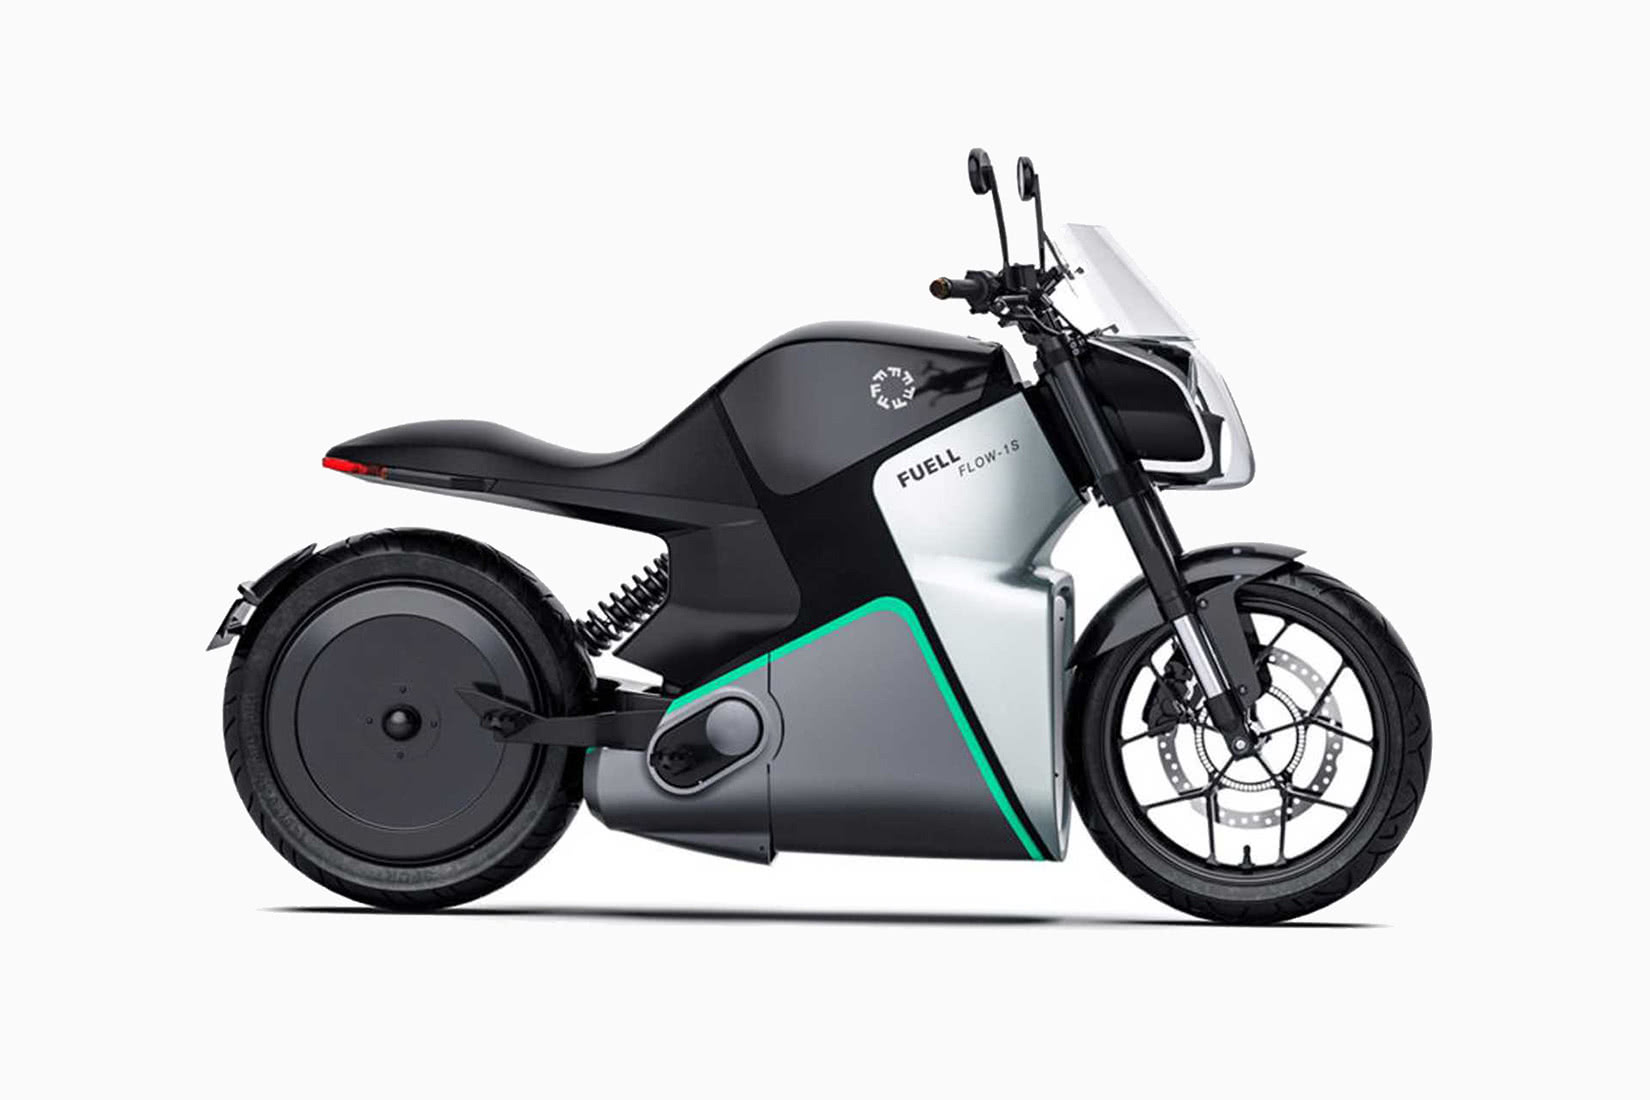 best electric motorcycles 2021 luxury Fuell Fllow - Luxe Digital